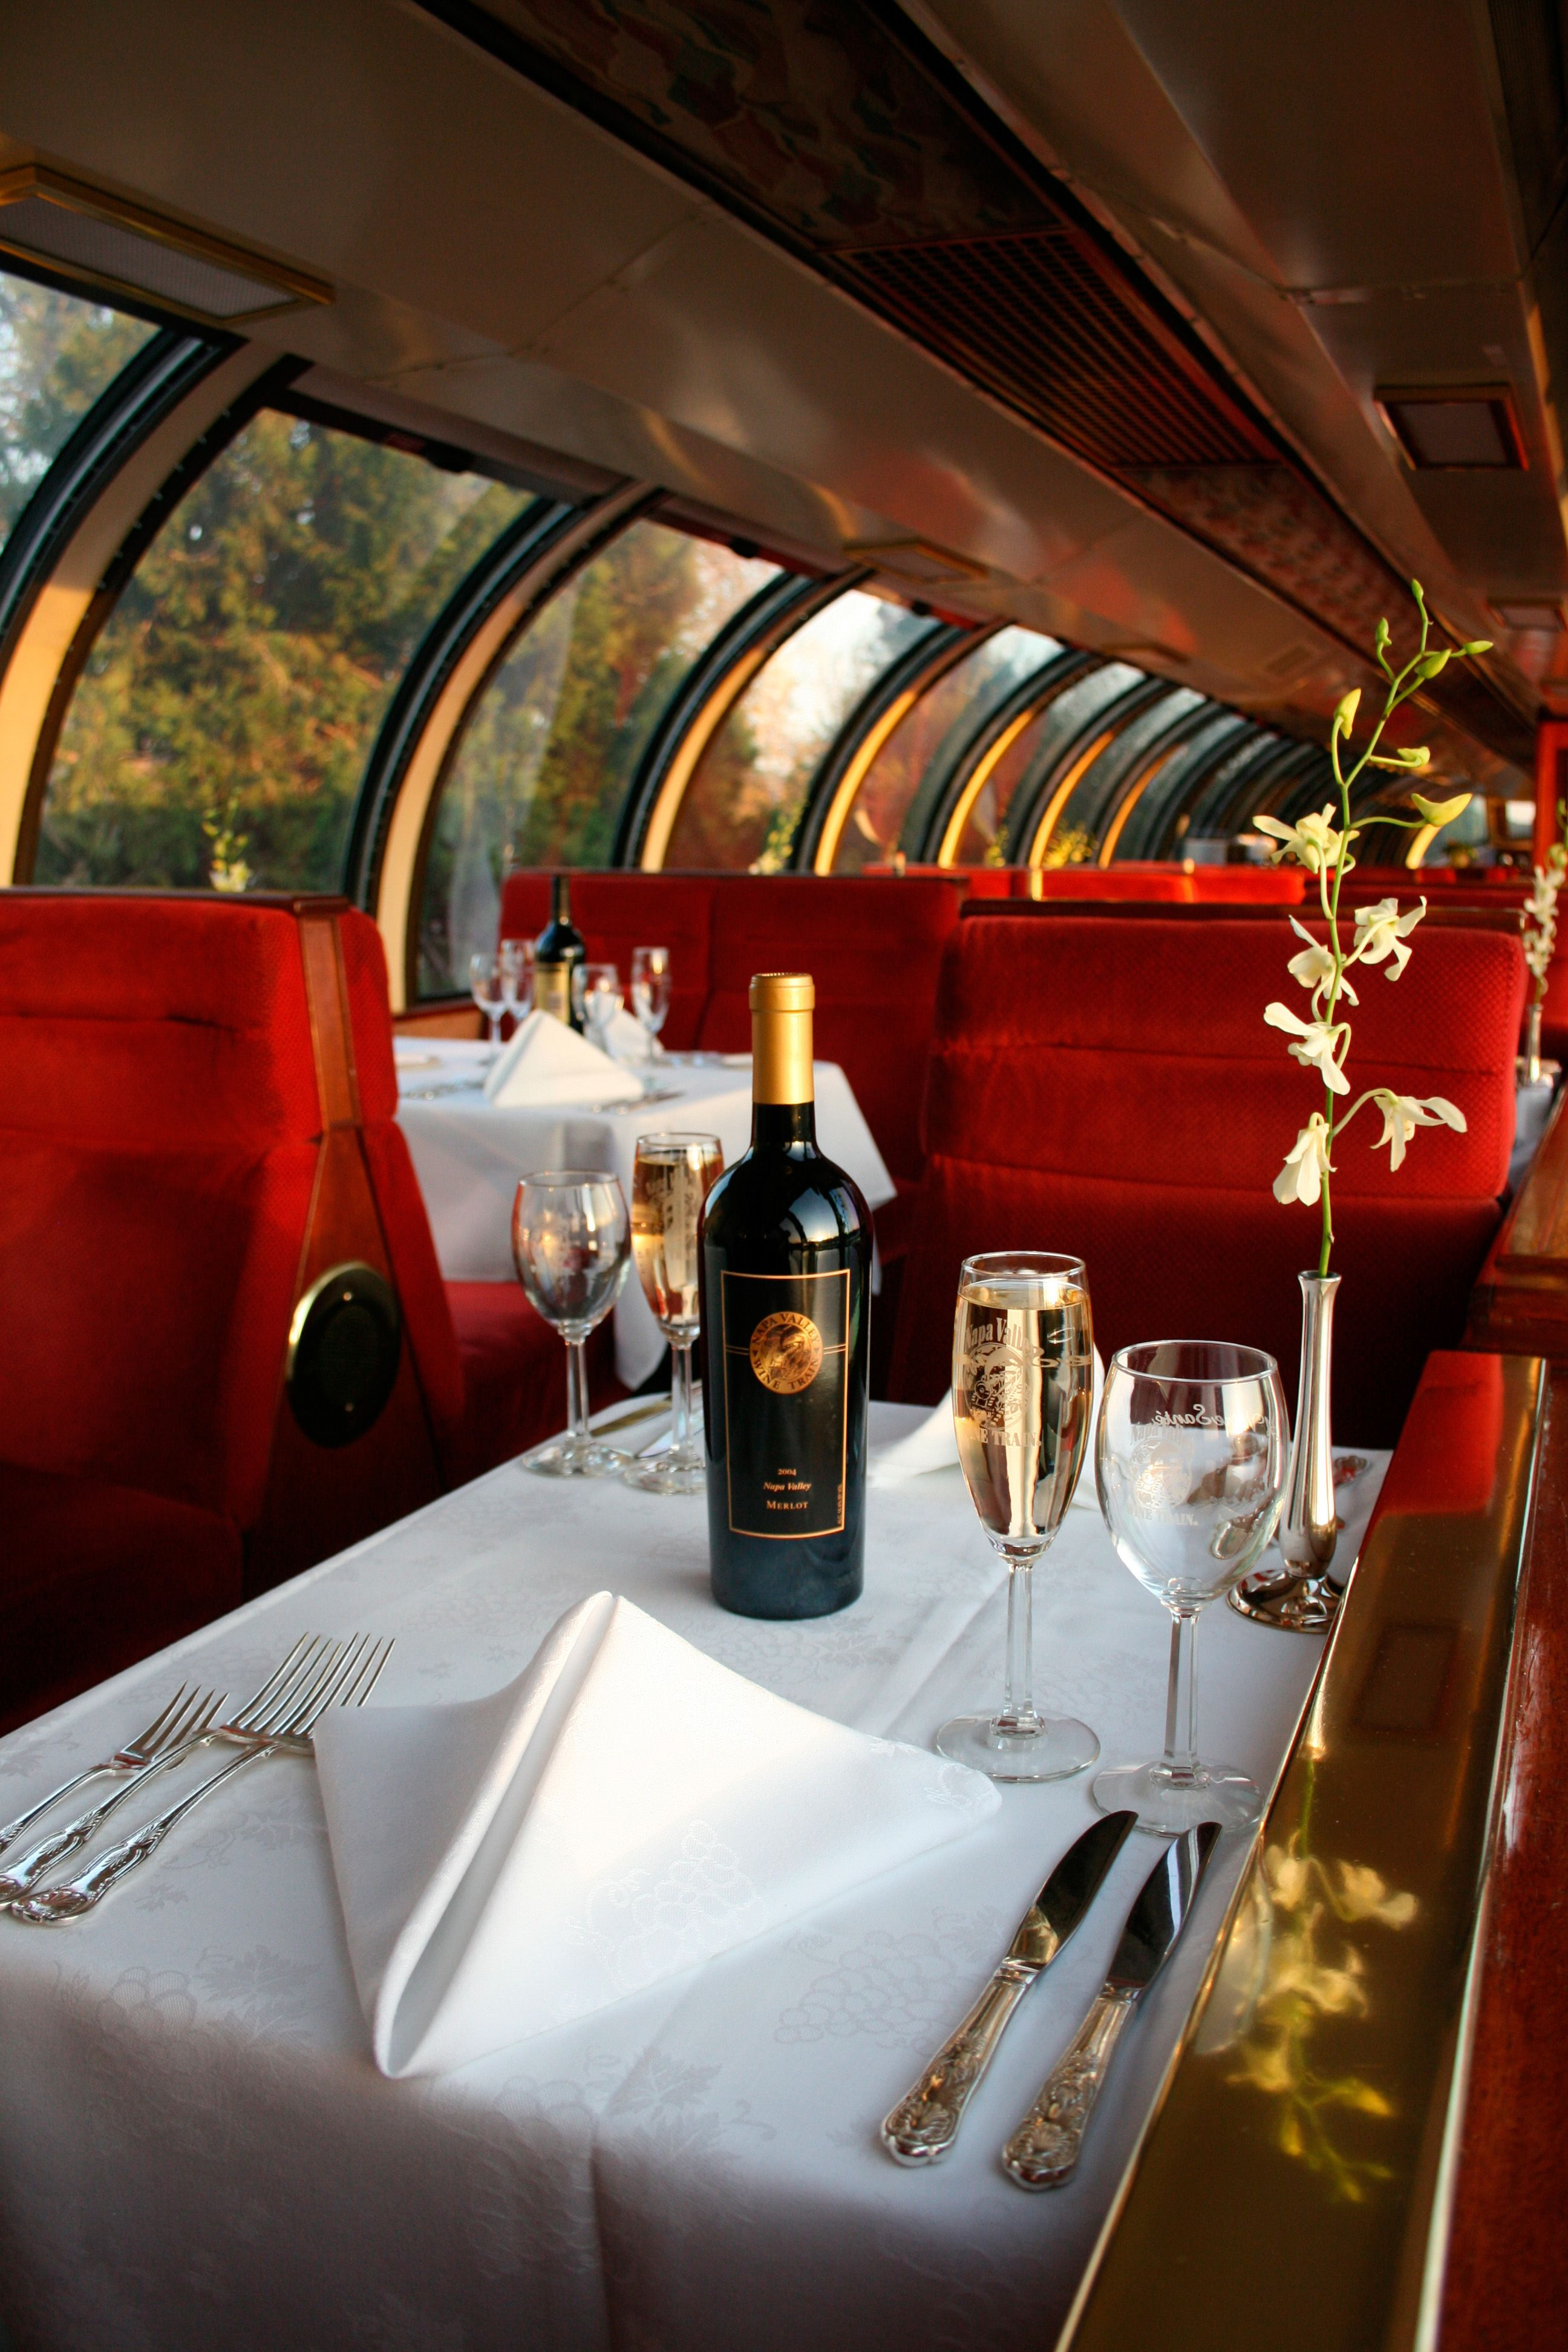 Our 1952 Pullman Domed Rail Car Provides Our Most Private Dining Experience The Vista Dome Car Is An Elevat Wine Train Napa Valley Wine Train Napa Valley Wine